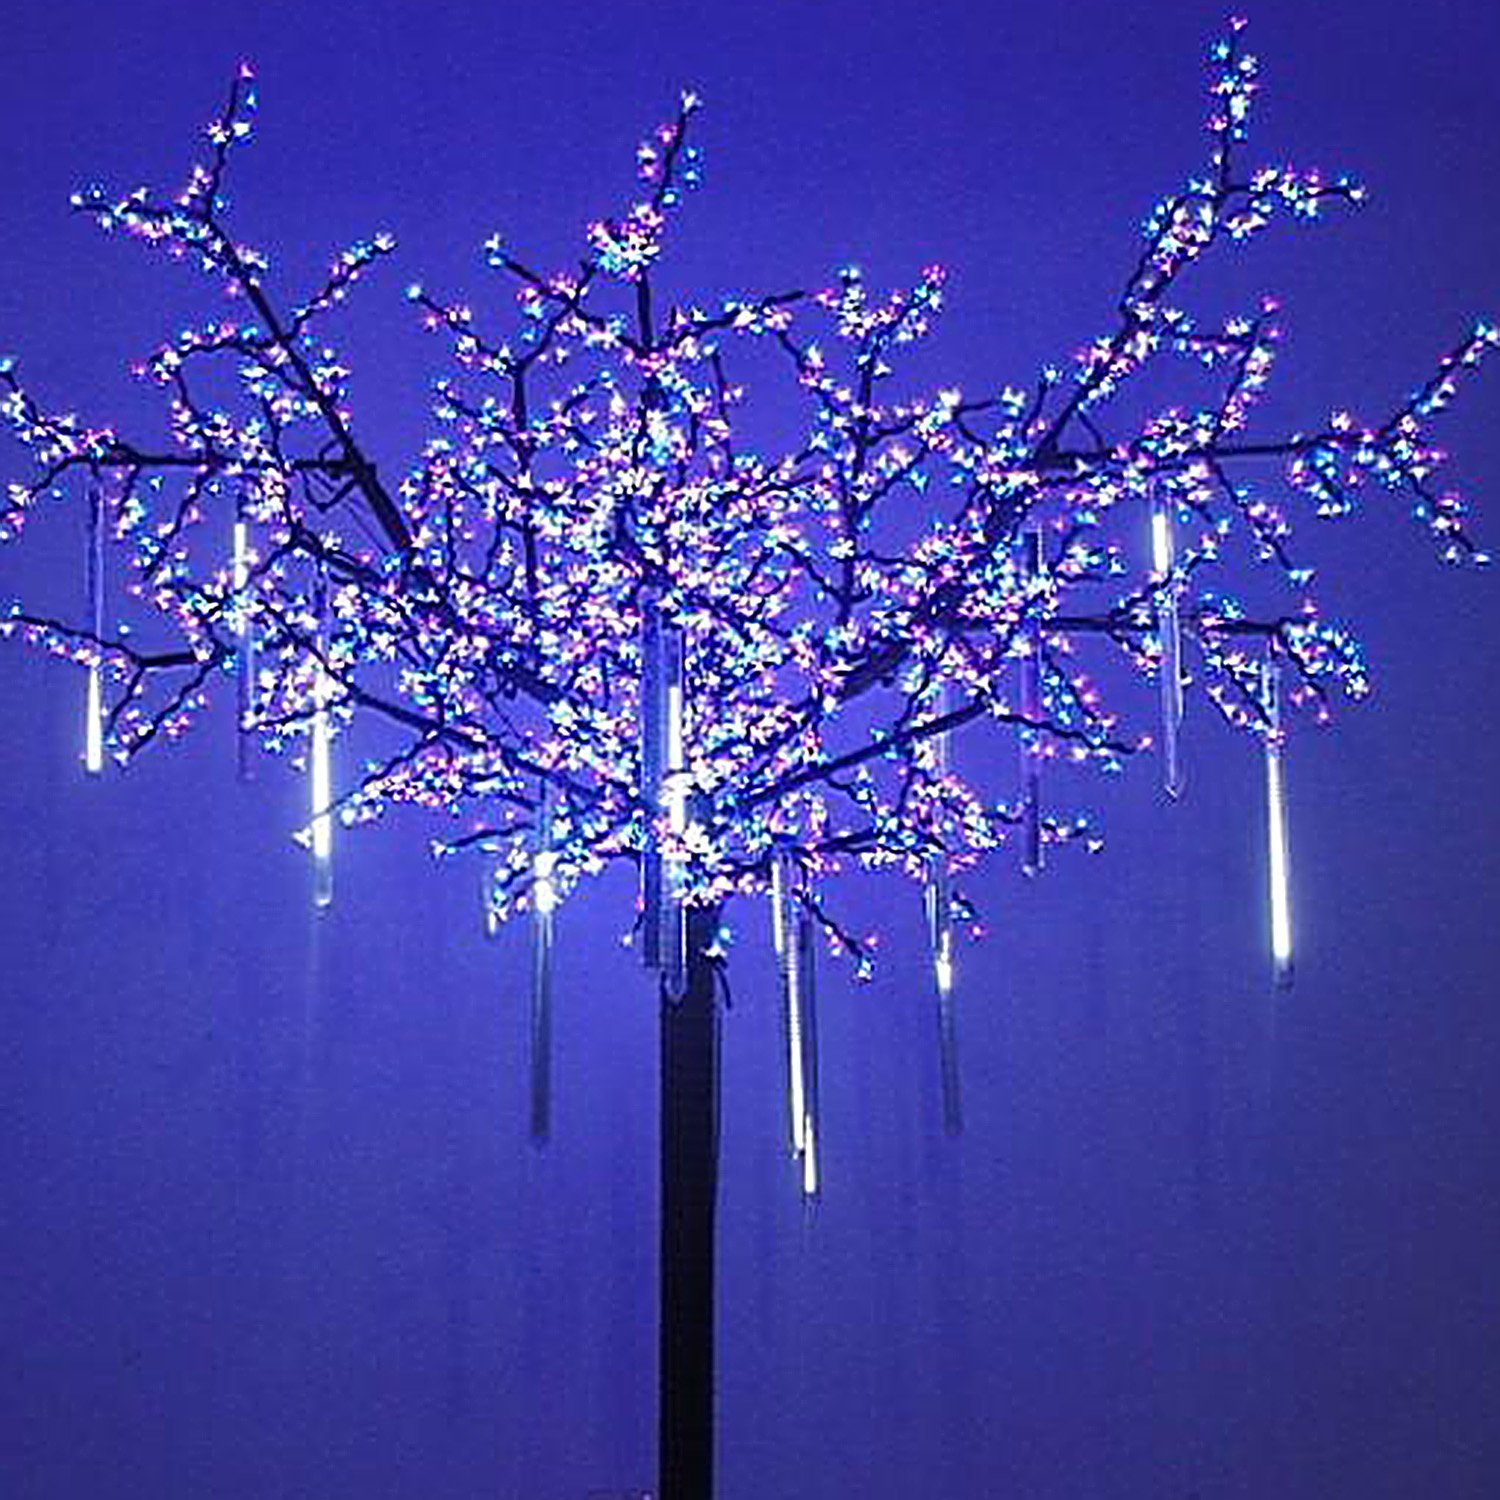 Christmas Lights That Look Like Water Falling.8 Falling Rain Drop Icicle Snow Fall String Led Xmas Tree Cascading Light Decor White Us Plug